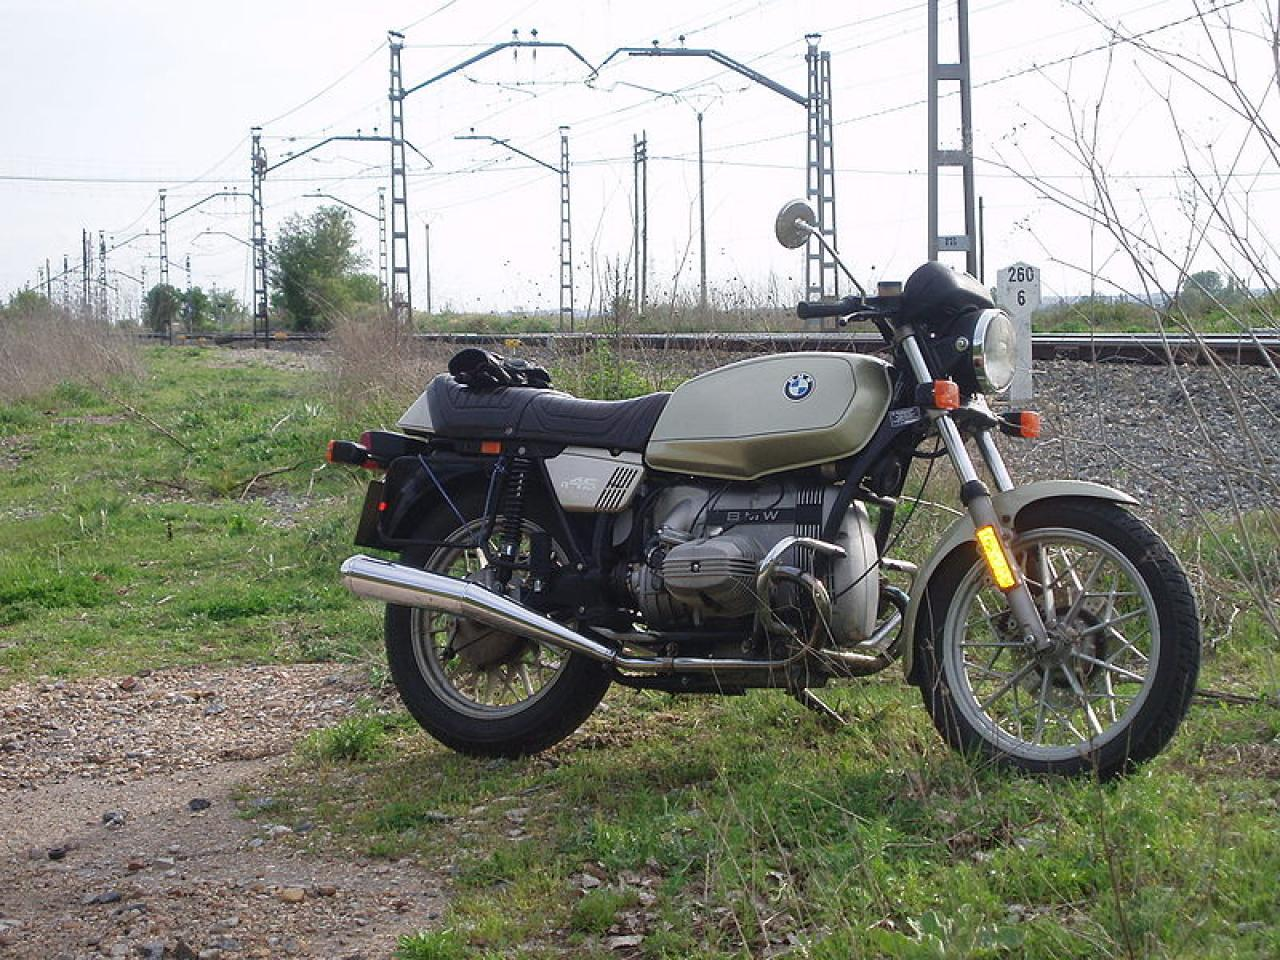 1980 BMW R45 (reduced effect) #2